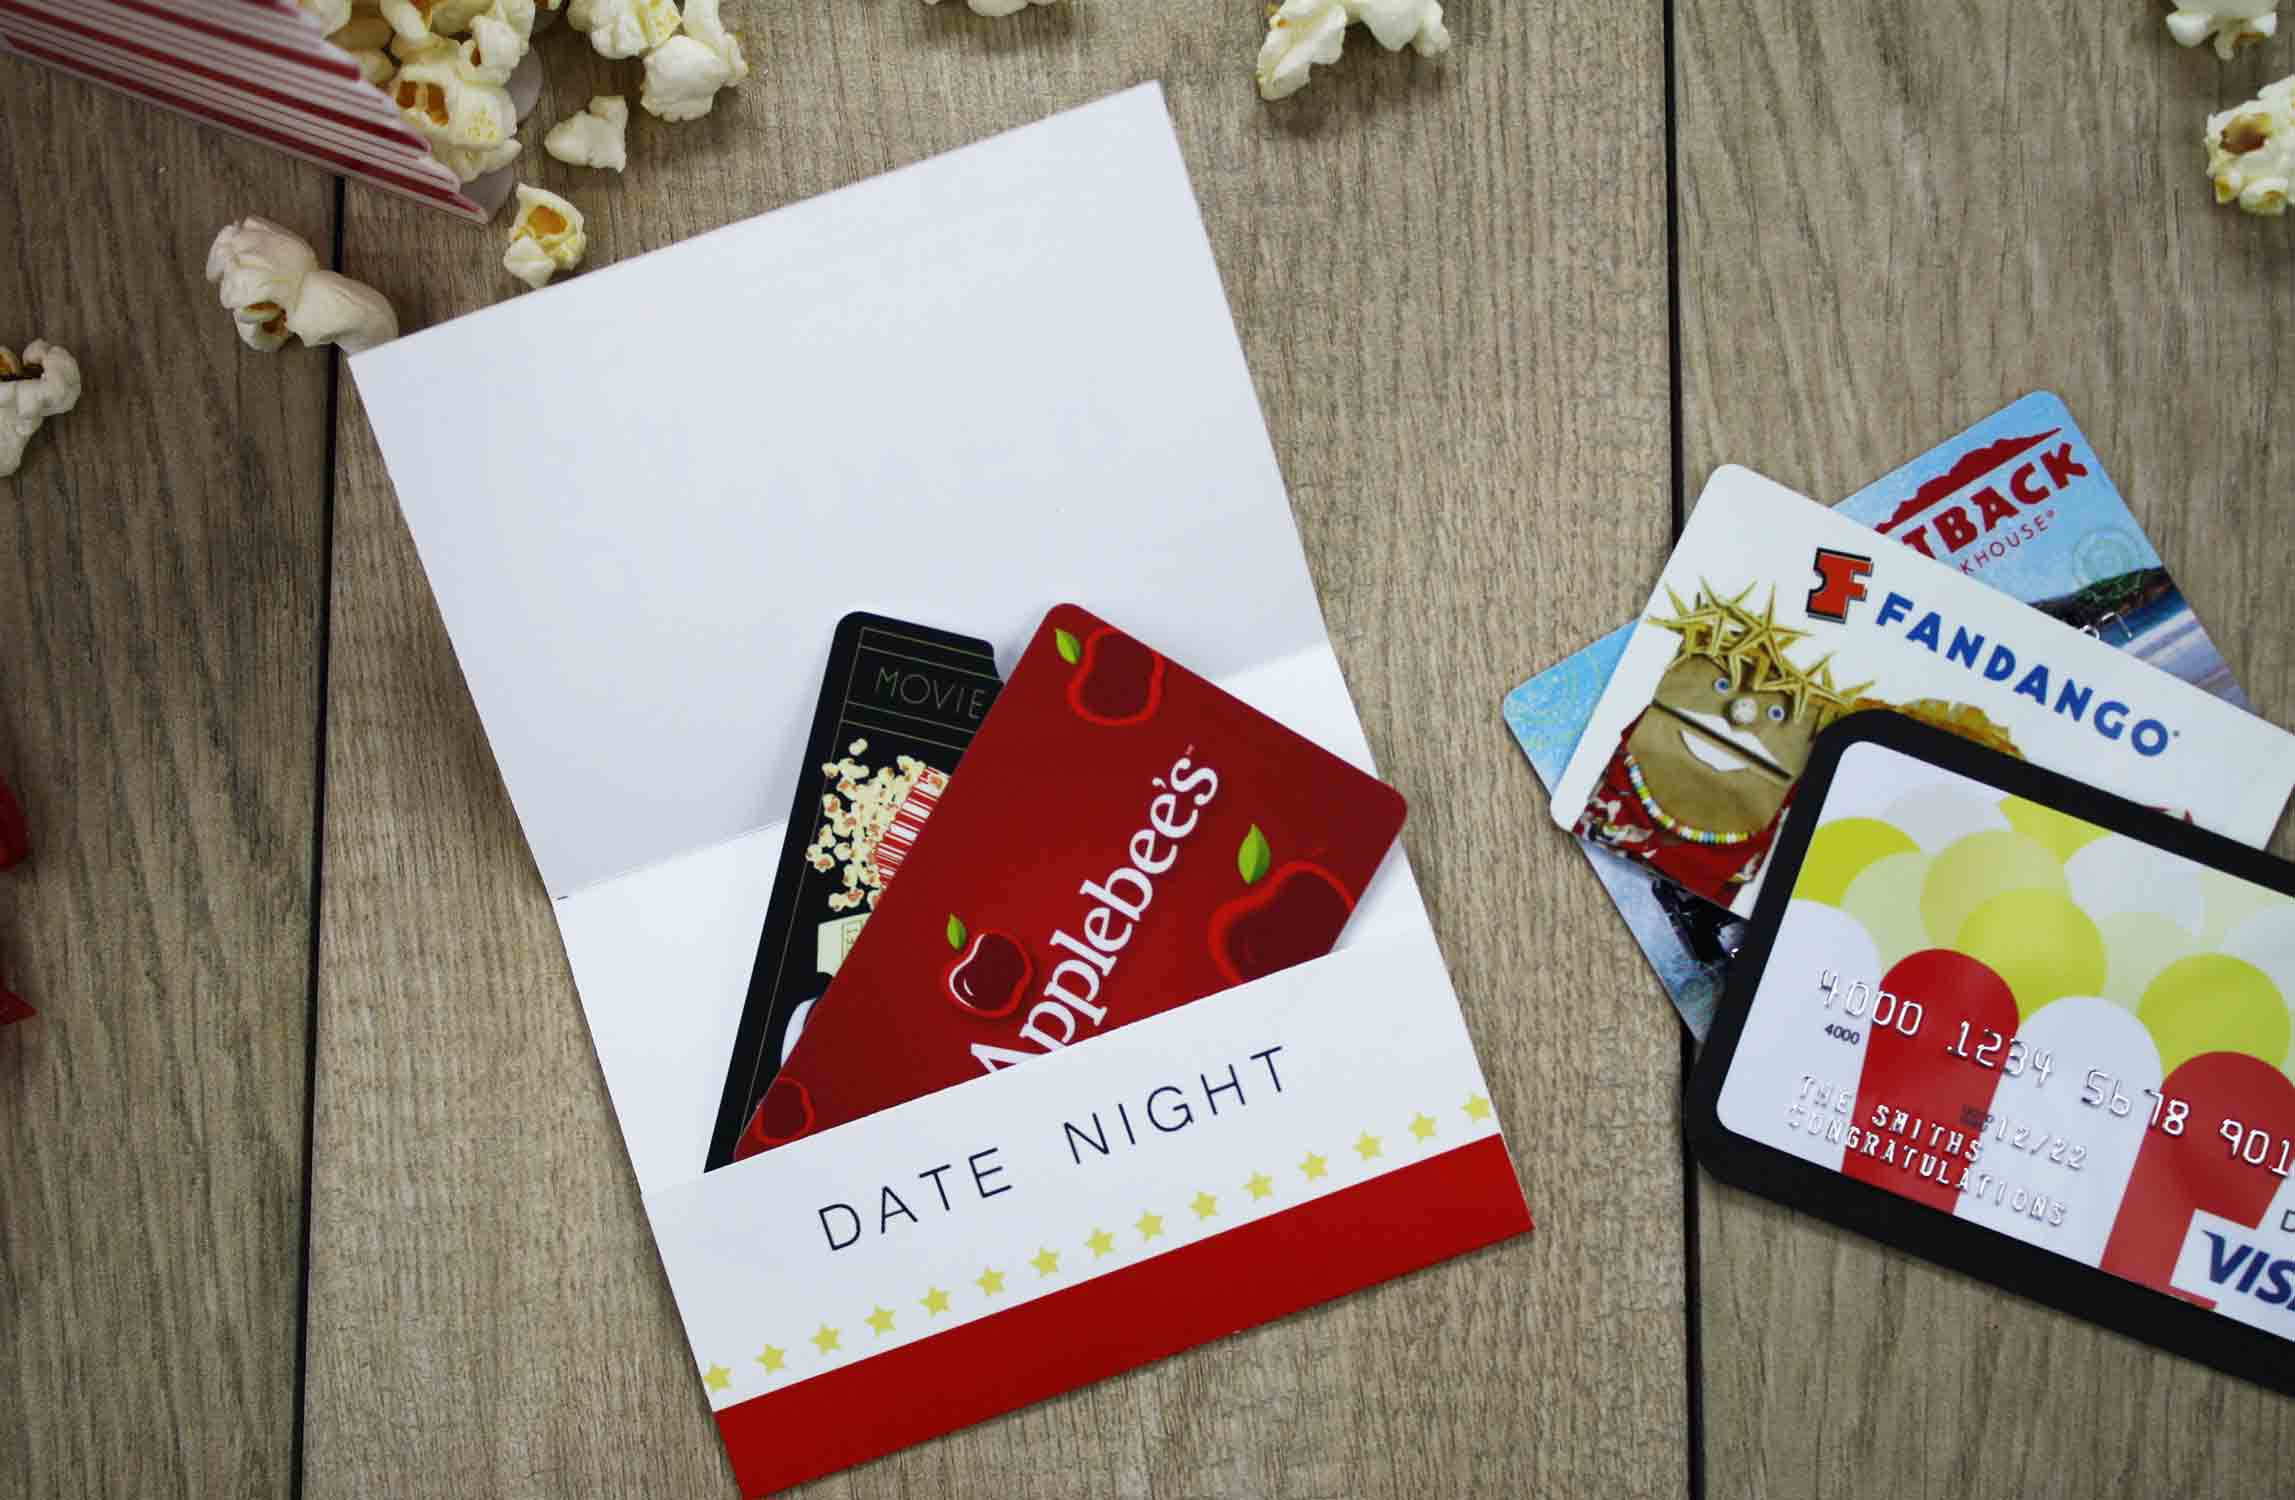 Date Night Gift For Wedding : Send a digital movie and restaurant egift card in less time than it ...